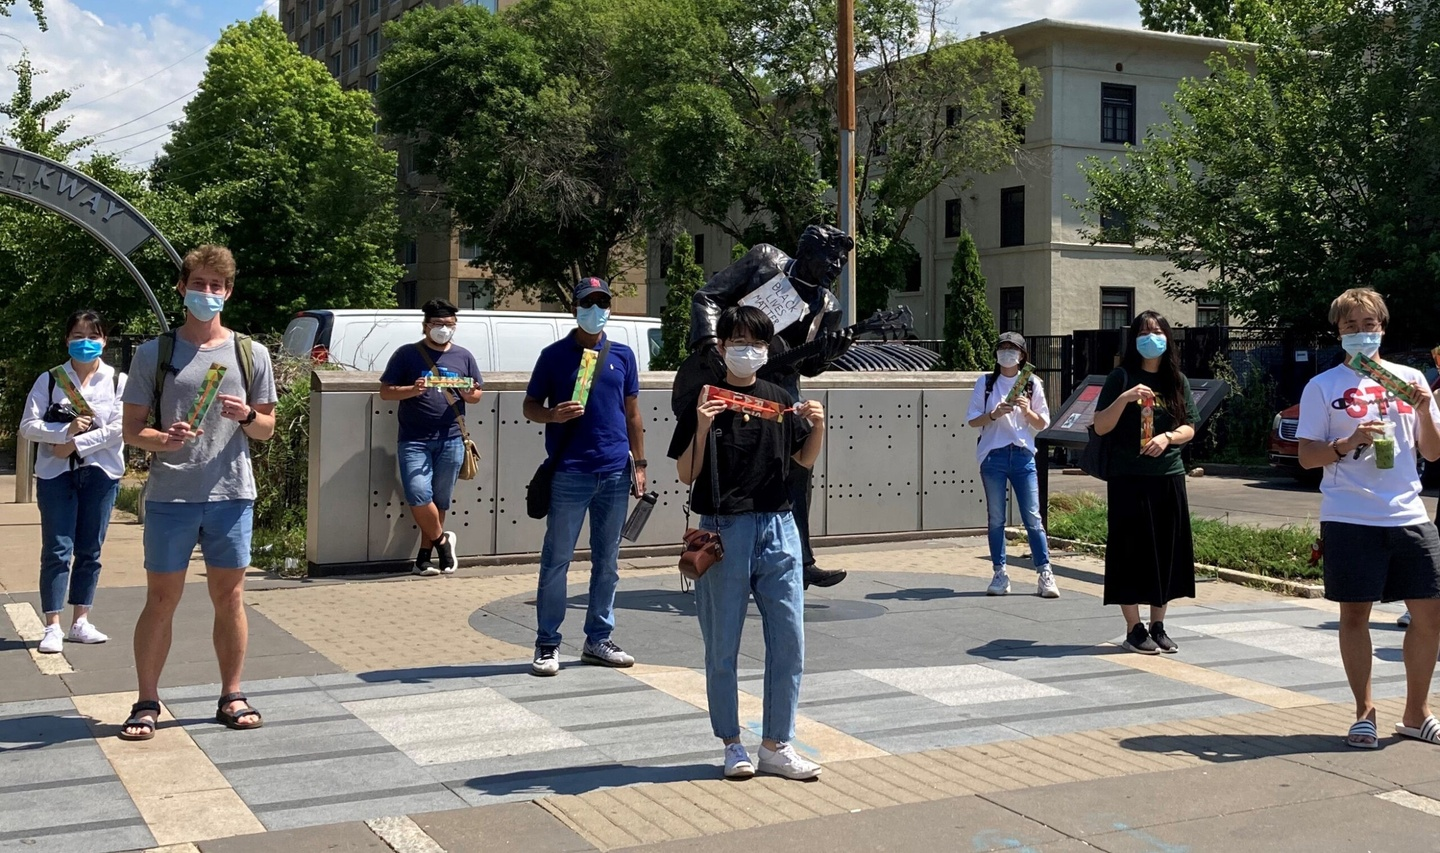 Eight students stand in three rows, spaced at least 6 feet apart from each other and wearing protective face masks; they are also holding rulers to measure social distance. They are standing outside in University City, Missouri.